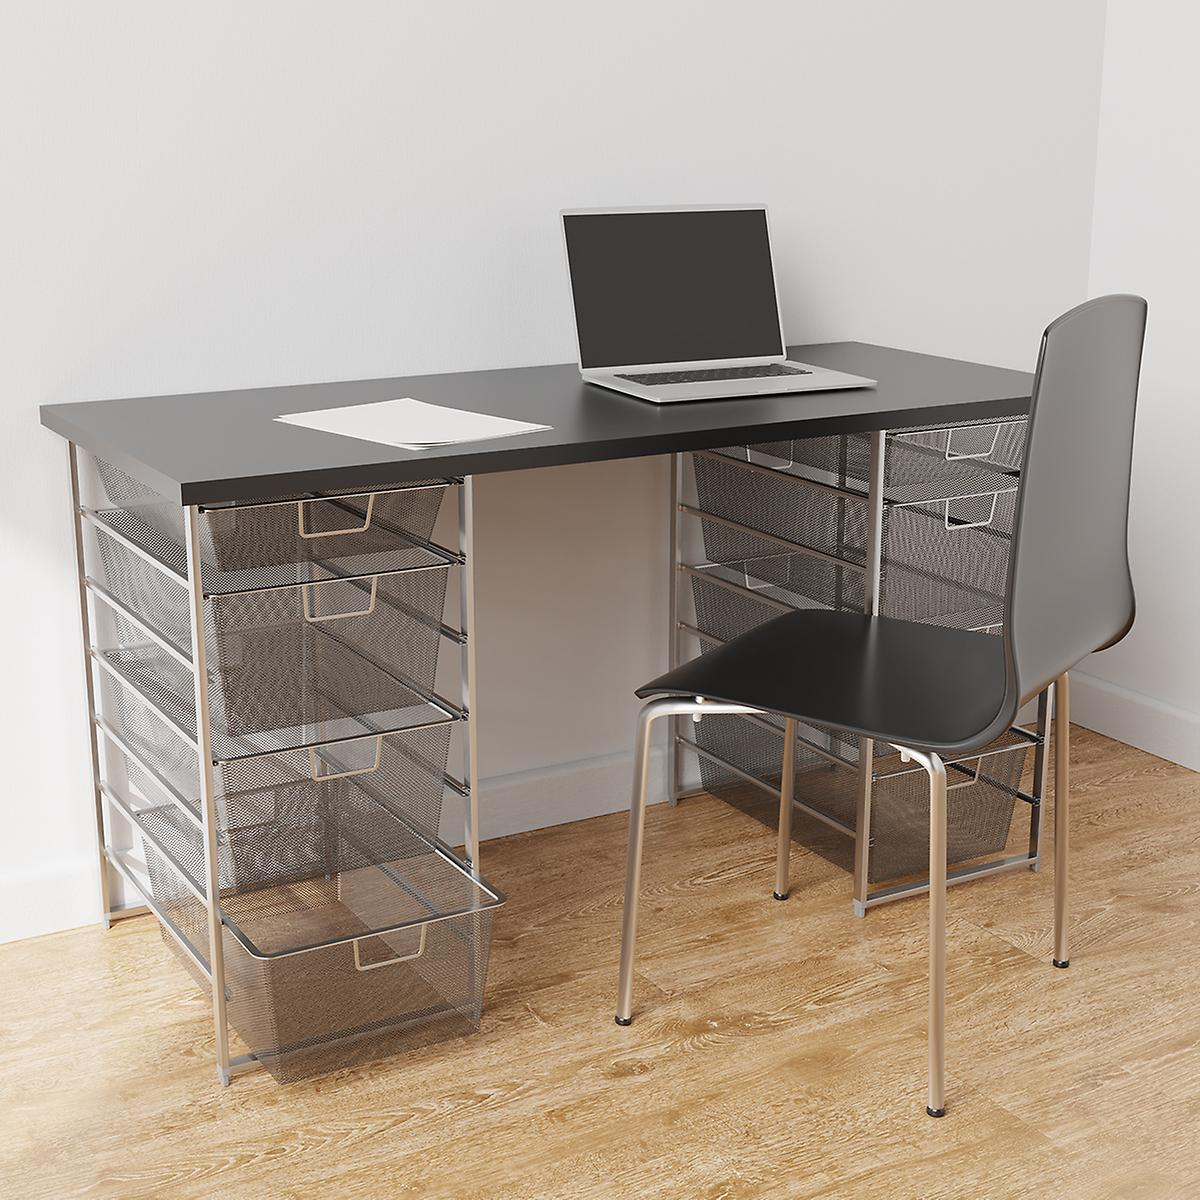 Elfa Platinum & Slate Desk with Double Drawers